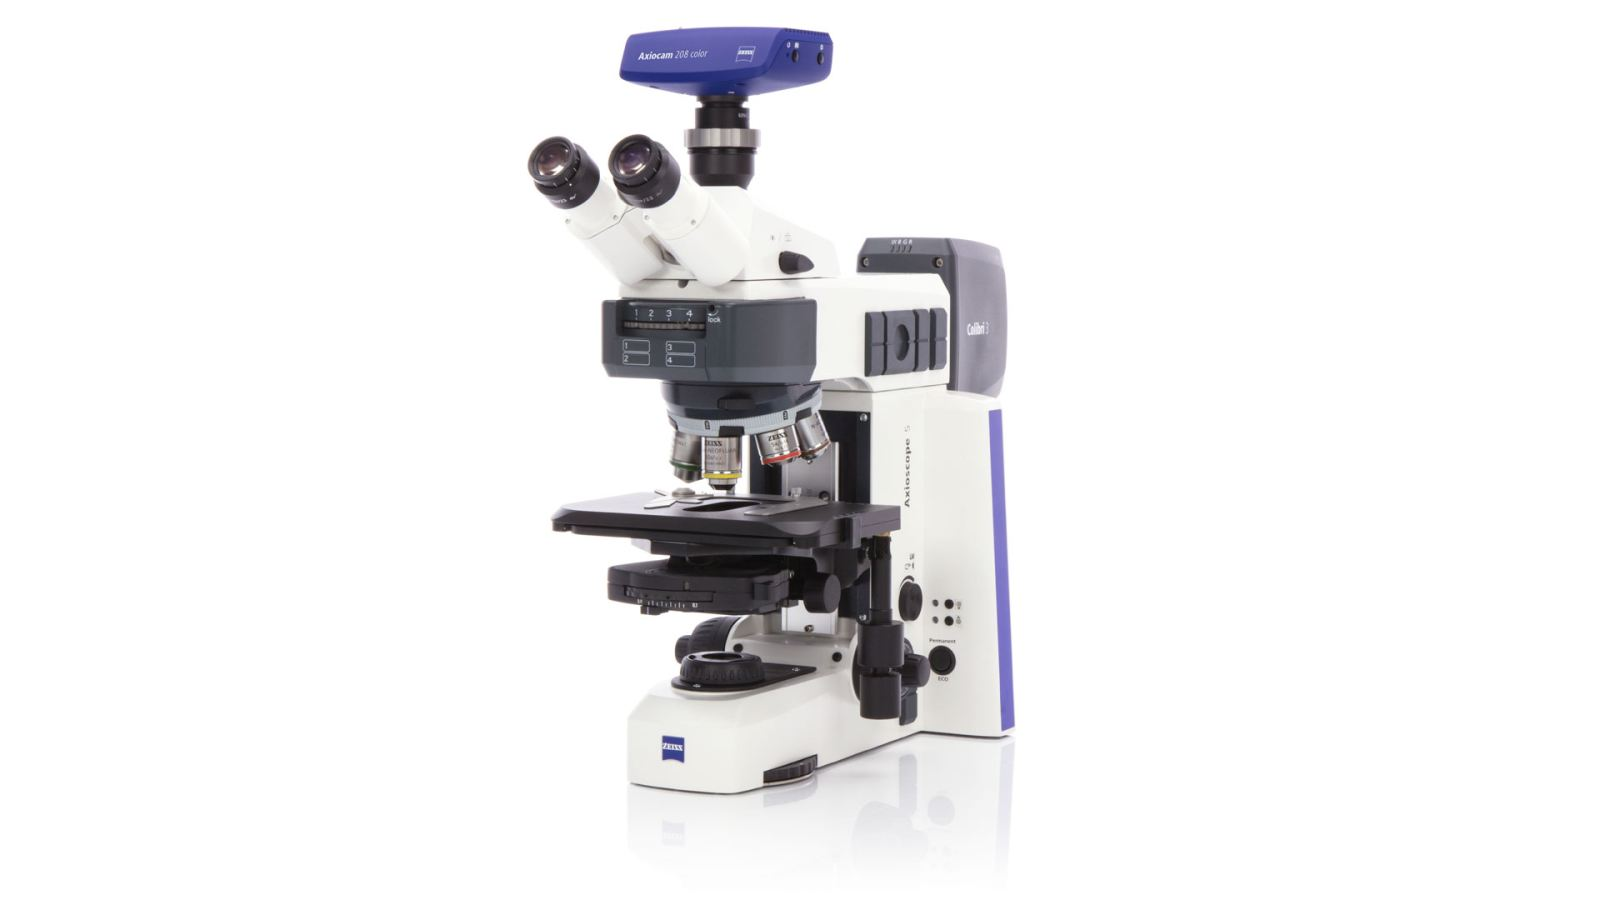 Zeiss Axiolab 5